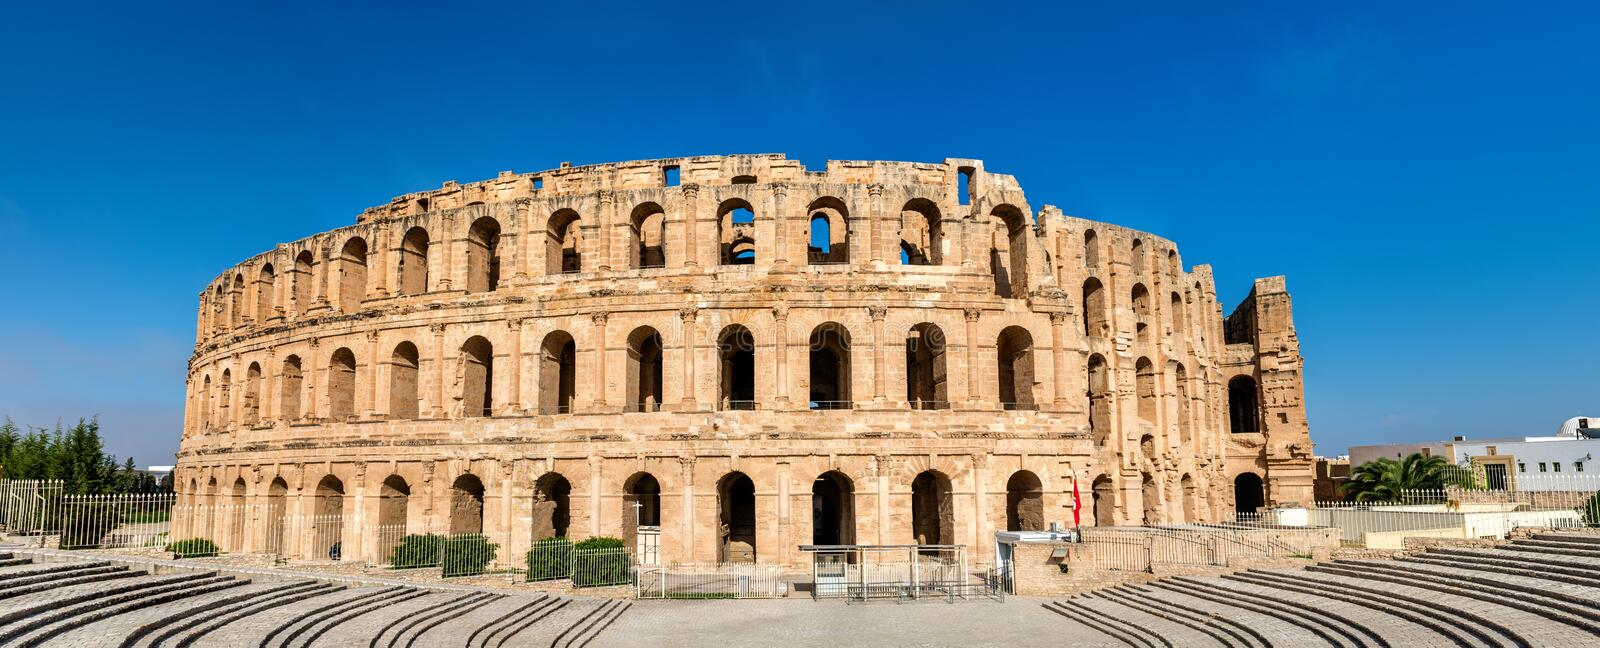 Amphitheatre of El Jem, a UNESCO world heritage site in Tunisia. North Africa stock photography